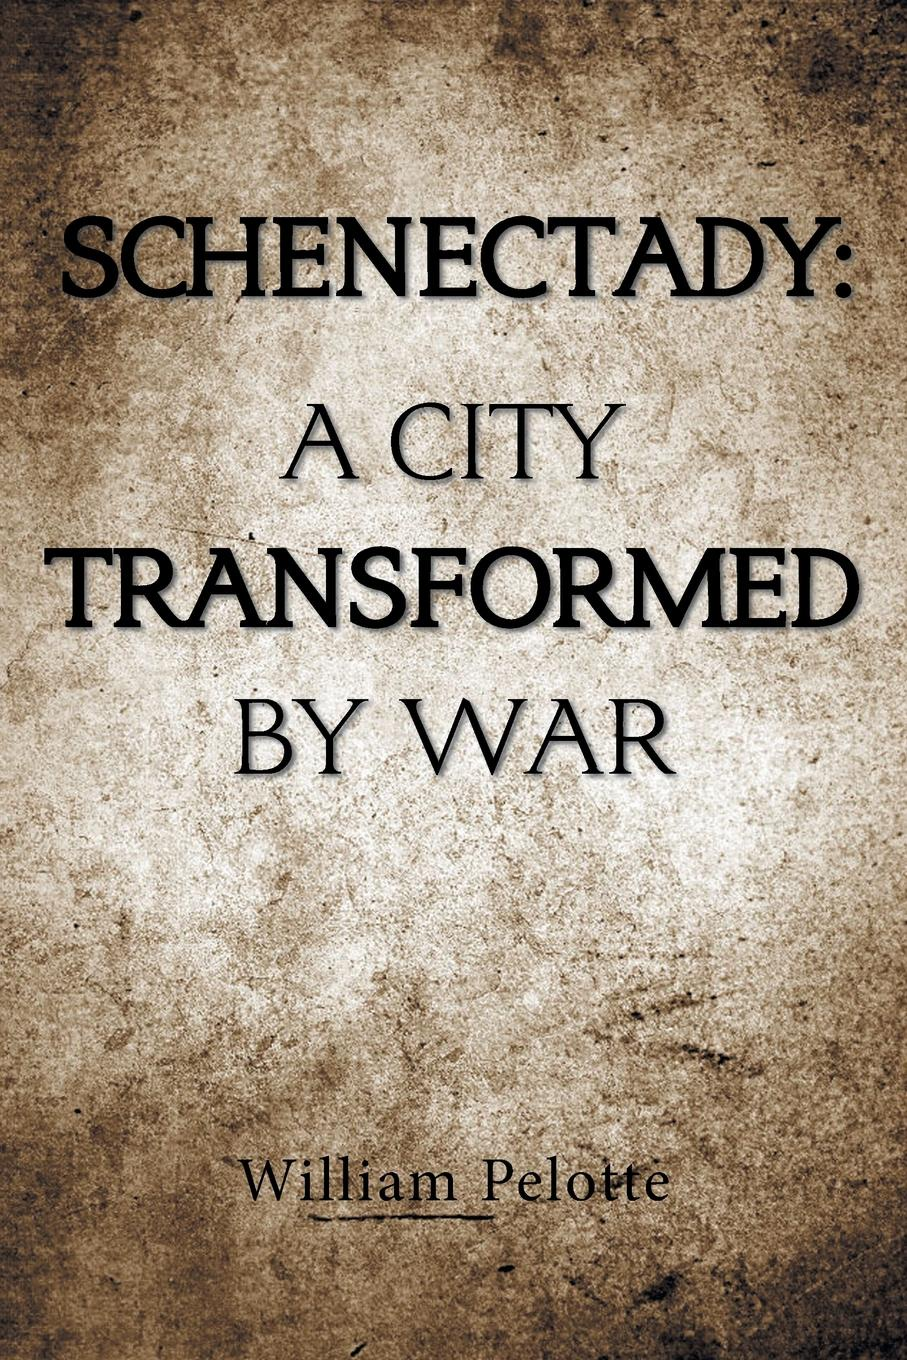 William Pelotte Schenectady. a City Transformed by War suzanne morse w smart communities how citizens and local leaders can use strategic thinking to build a brighter future